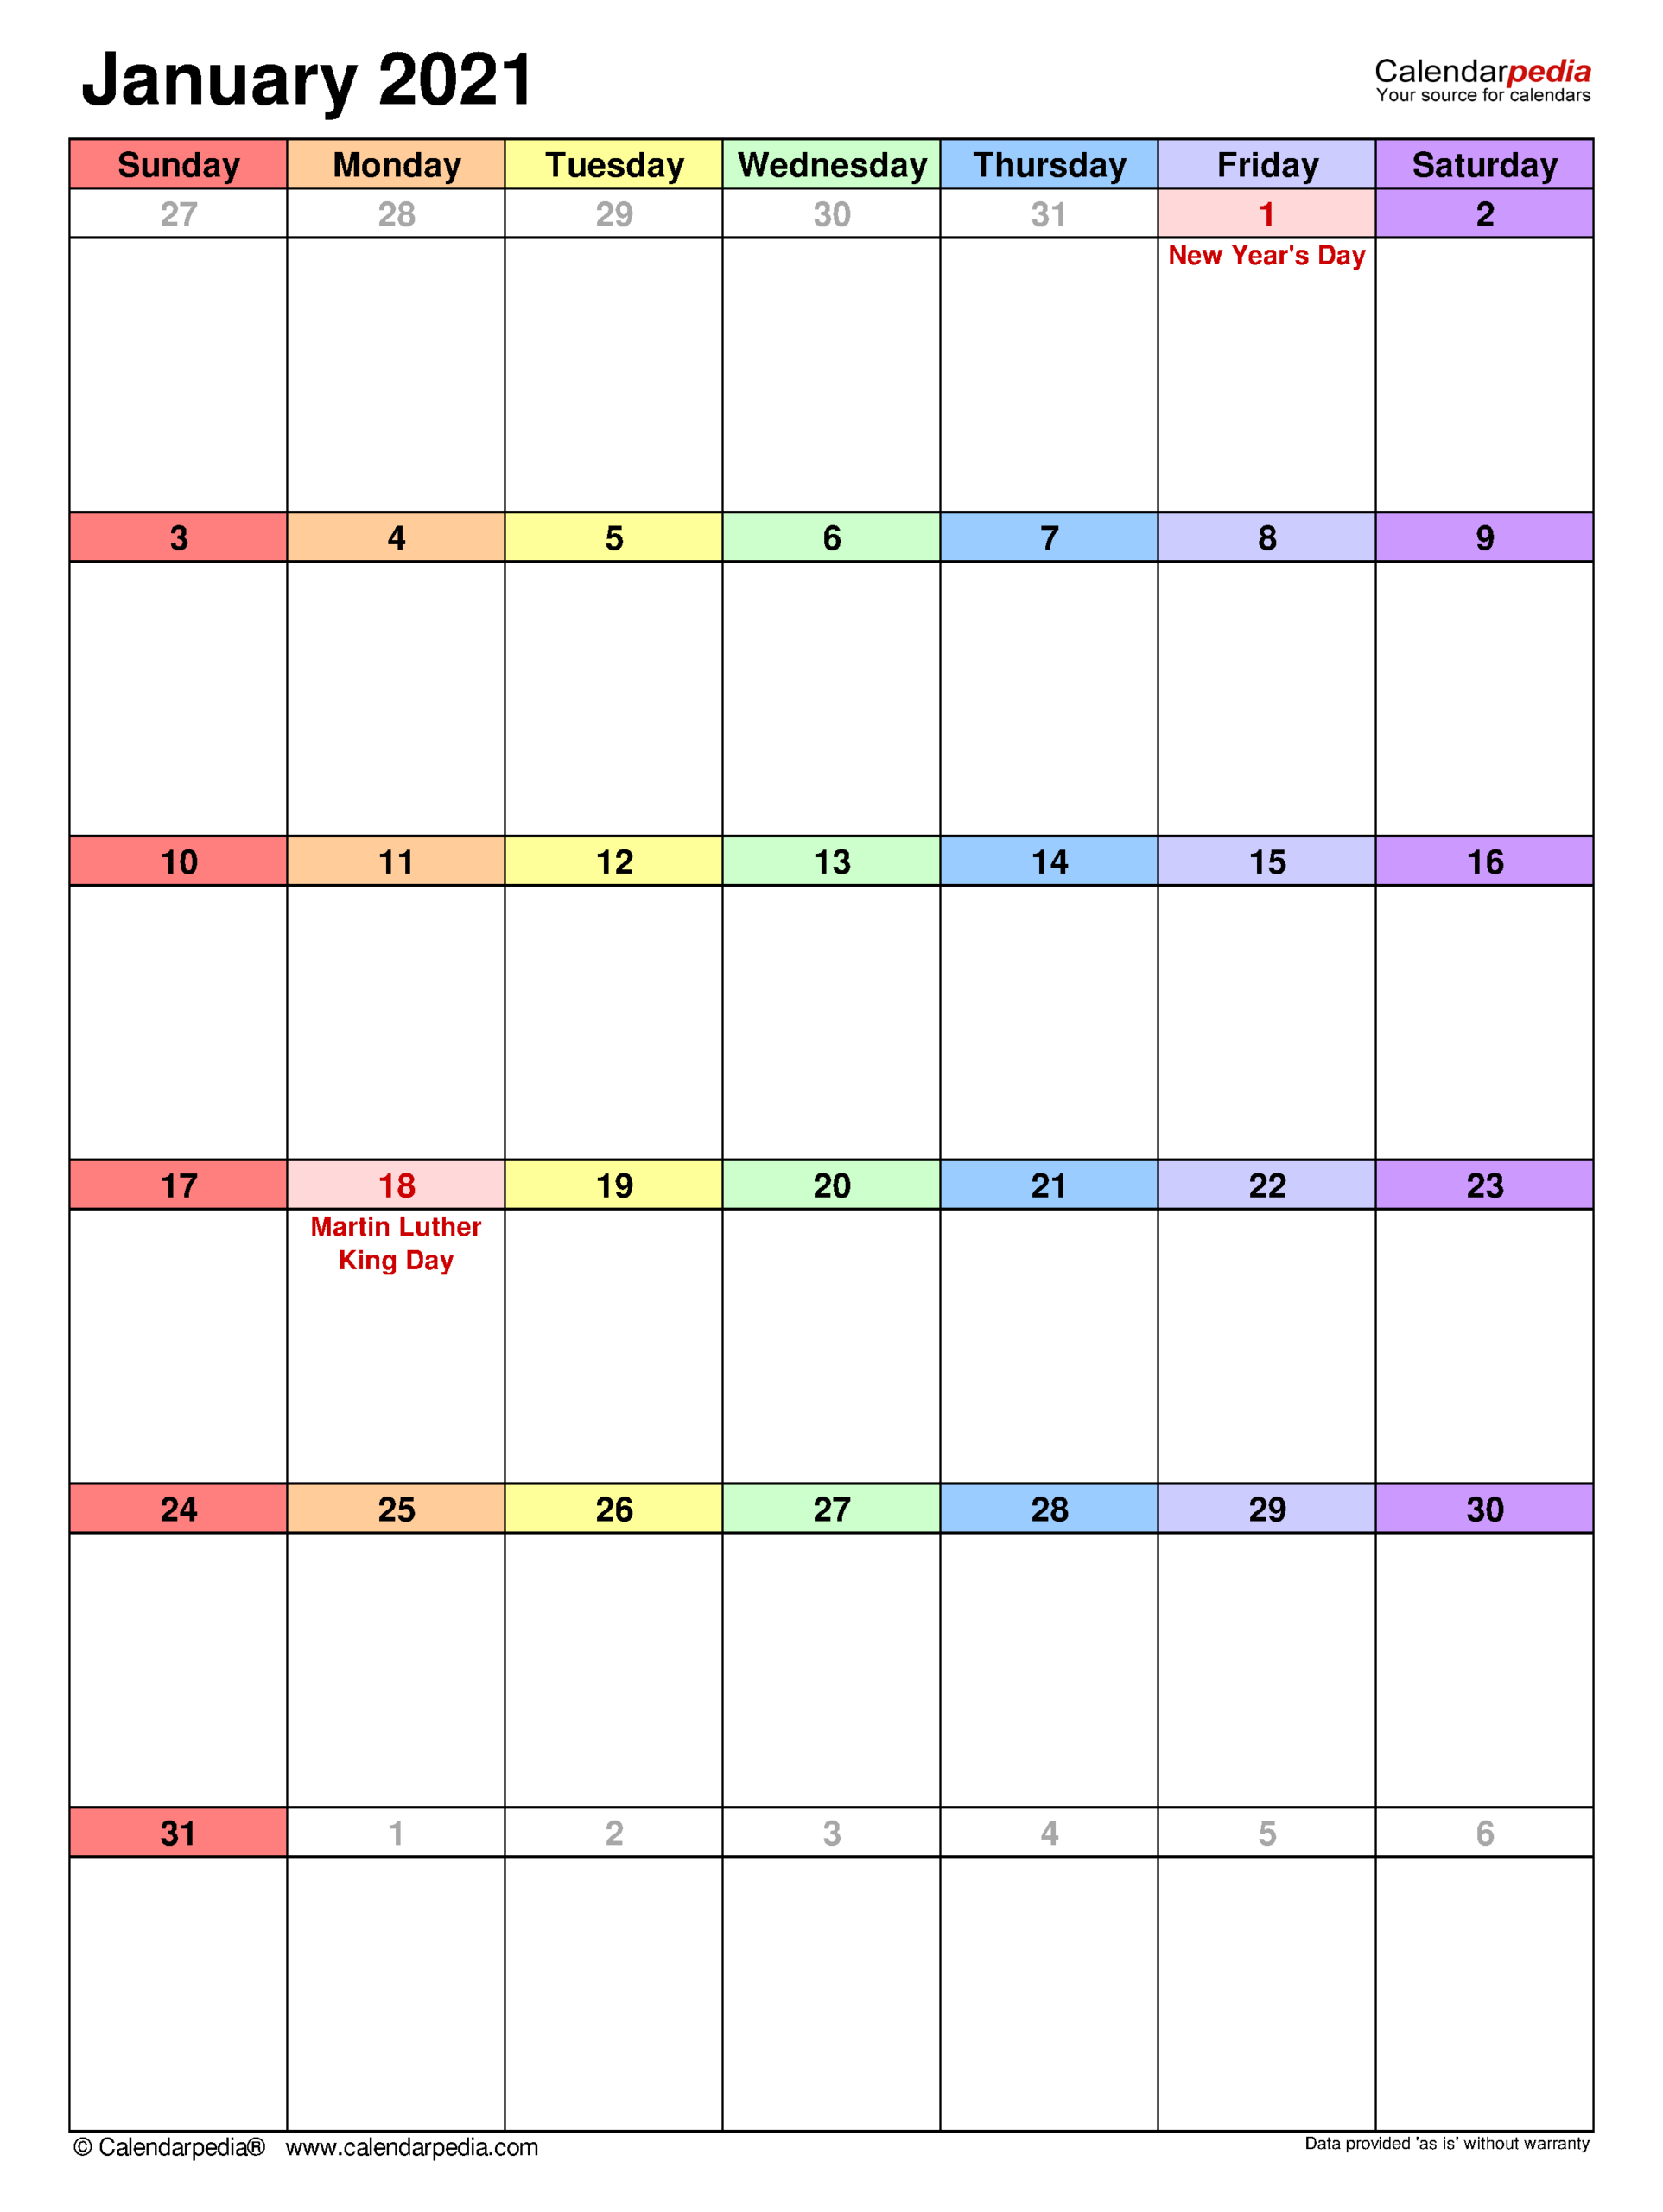 January 2021 Calendar | Templates For Word, Excel And Pdf pertaining to 2021 Fill-In Calendar